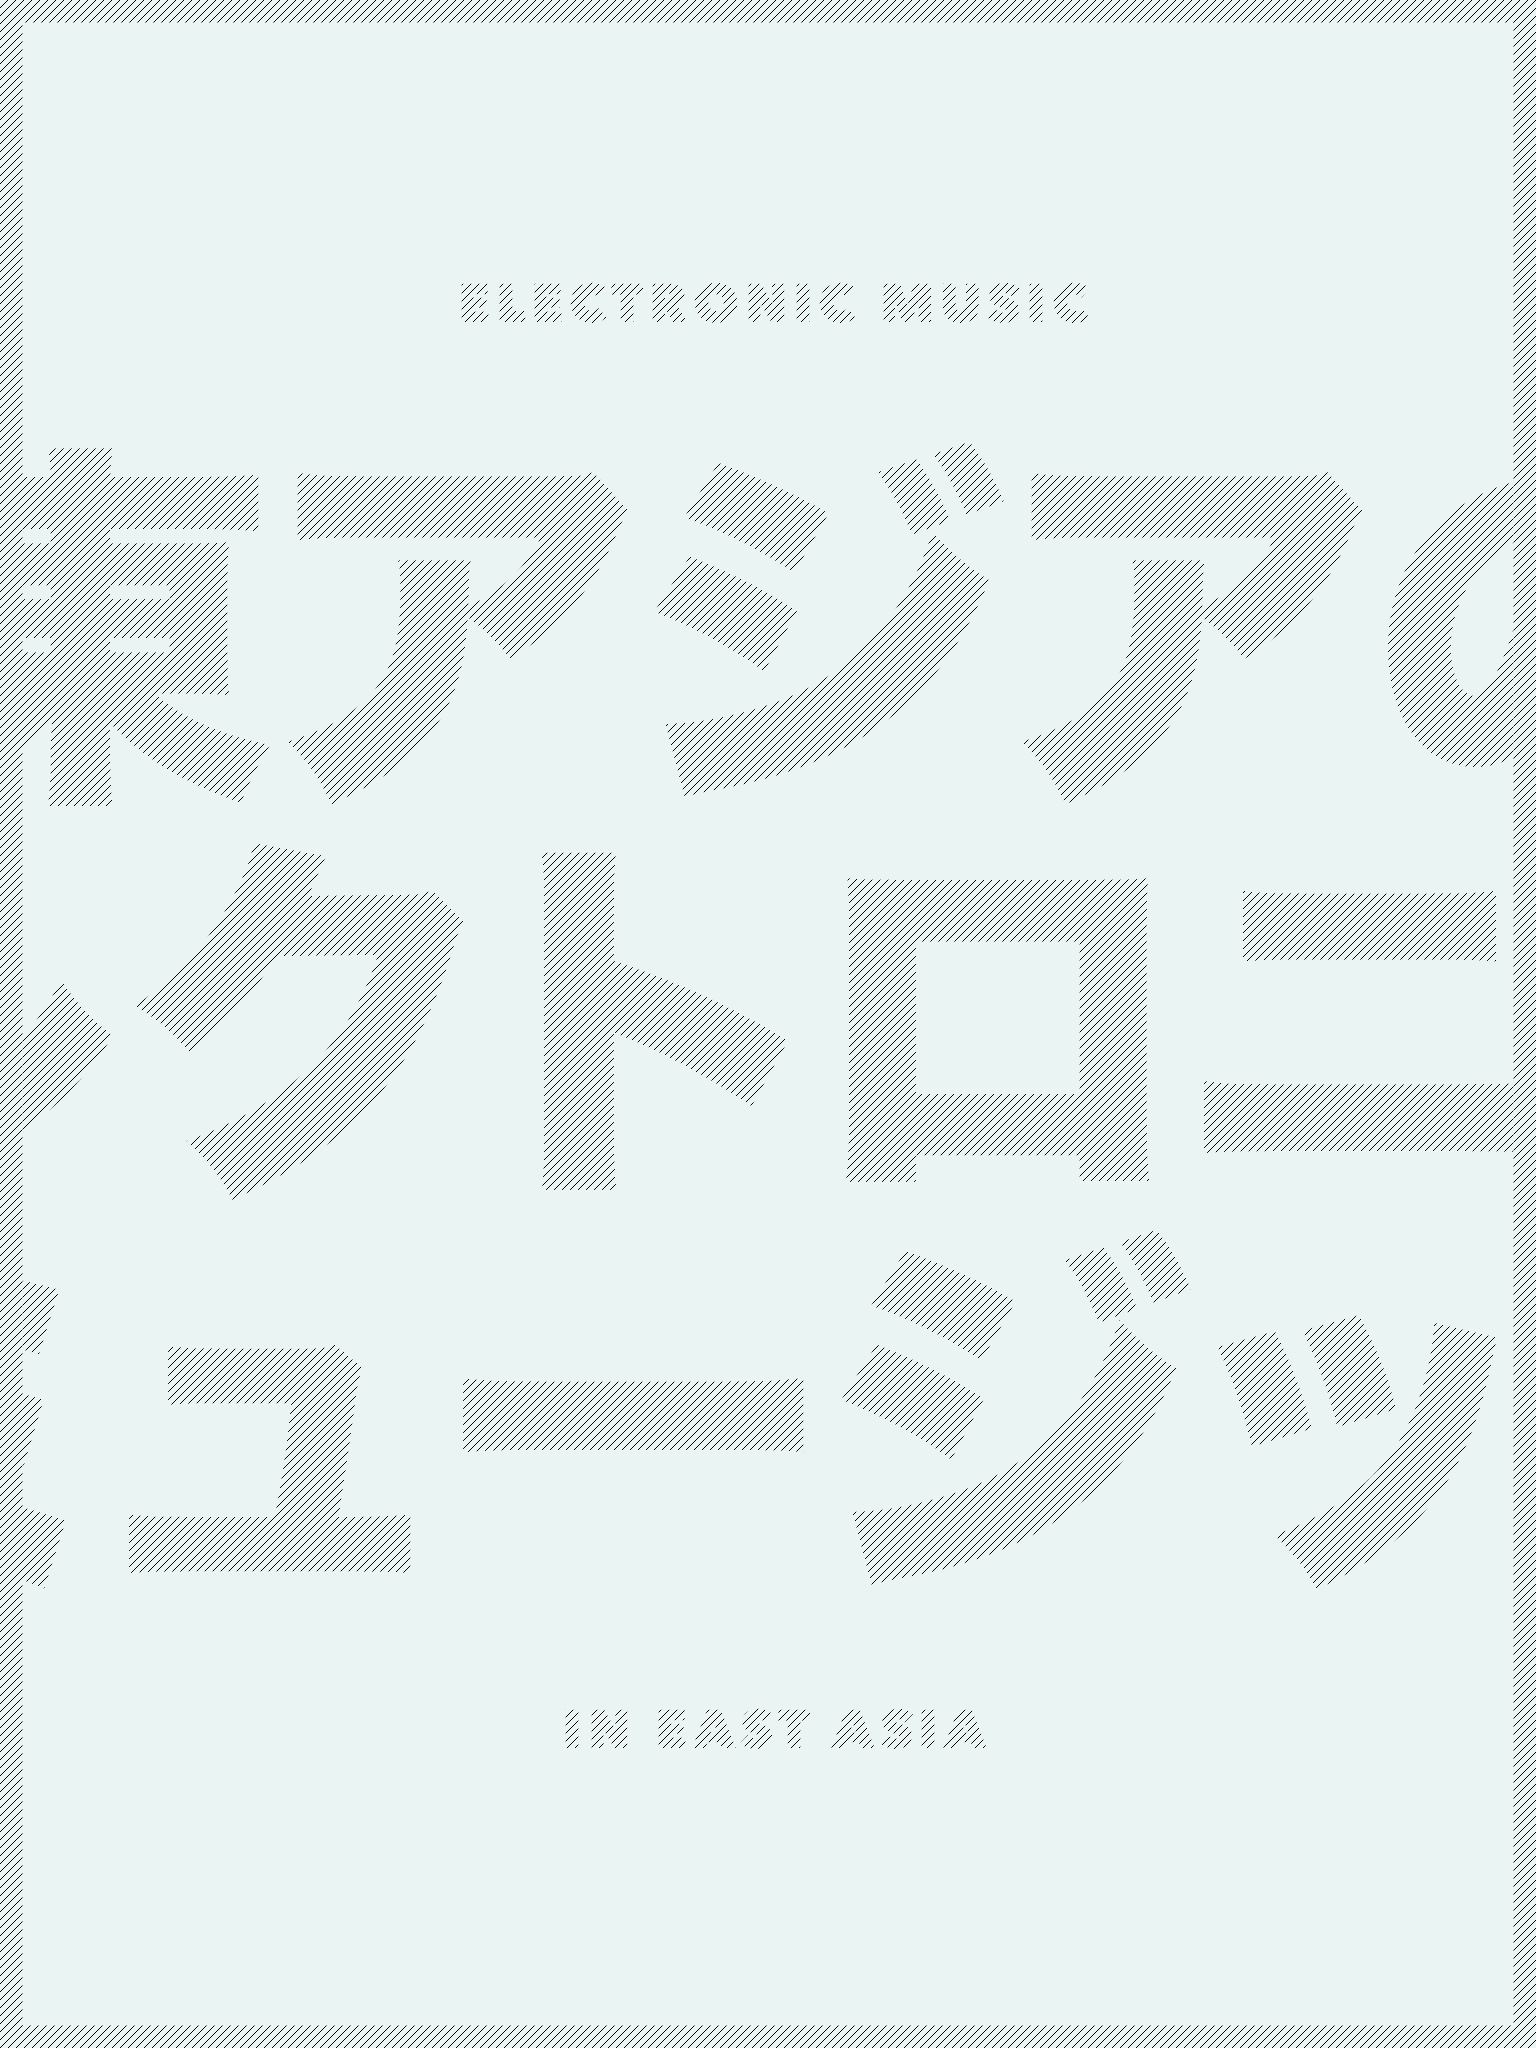 Electronic music in East Asia